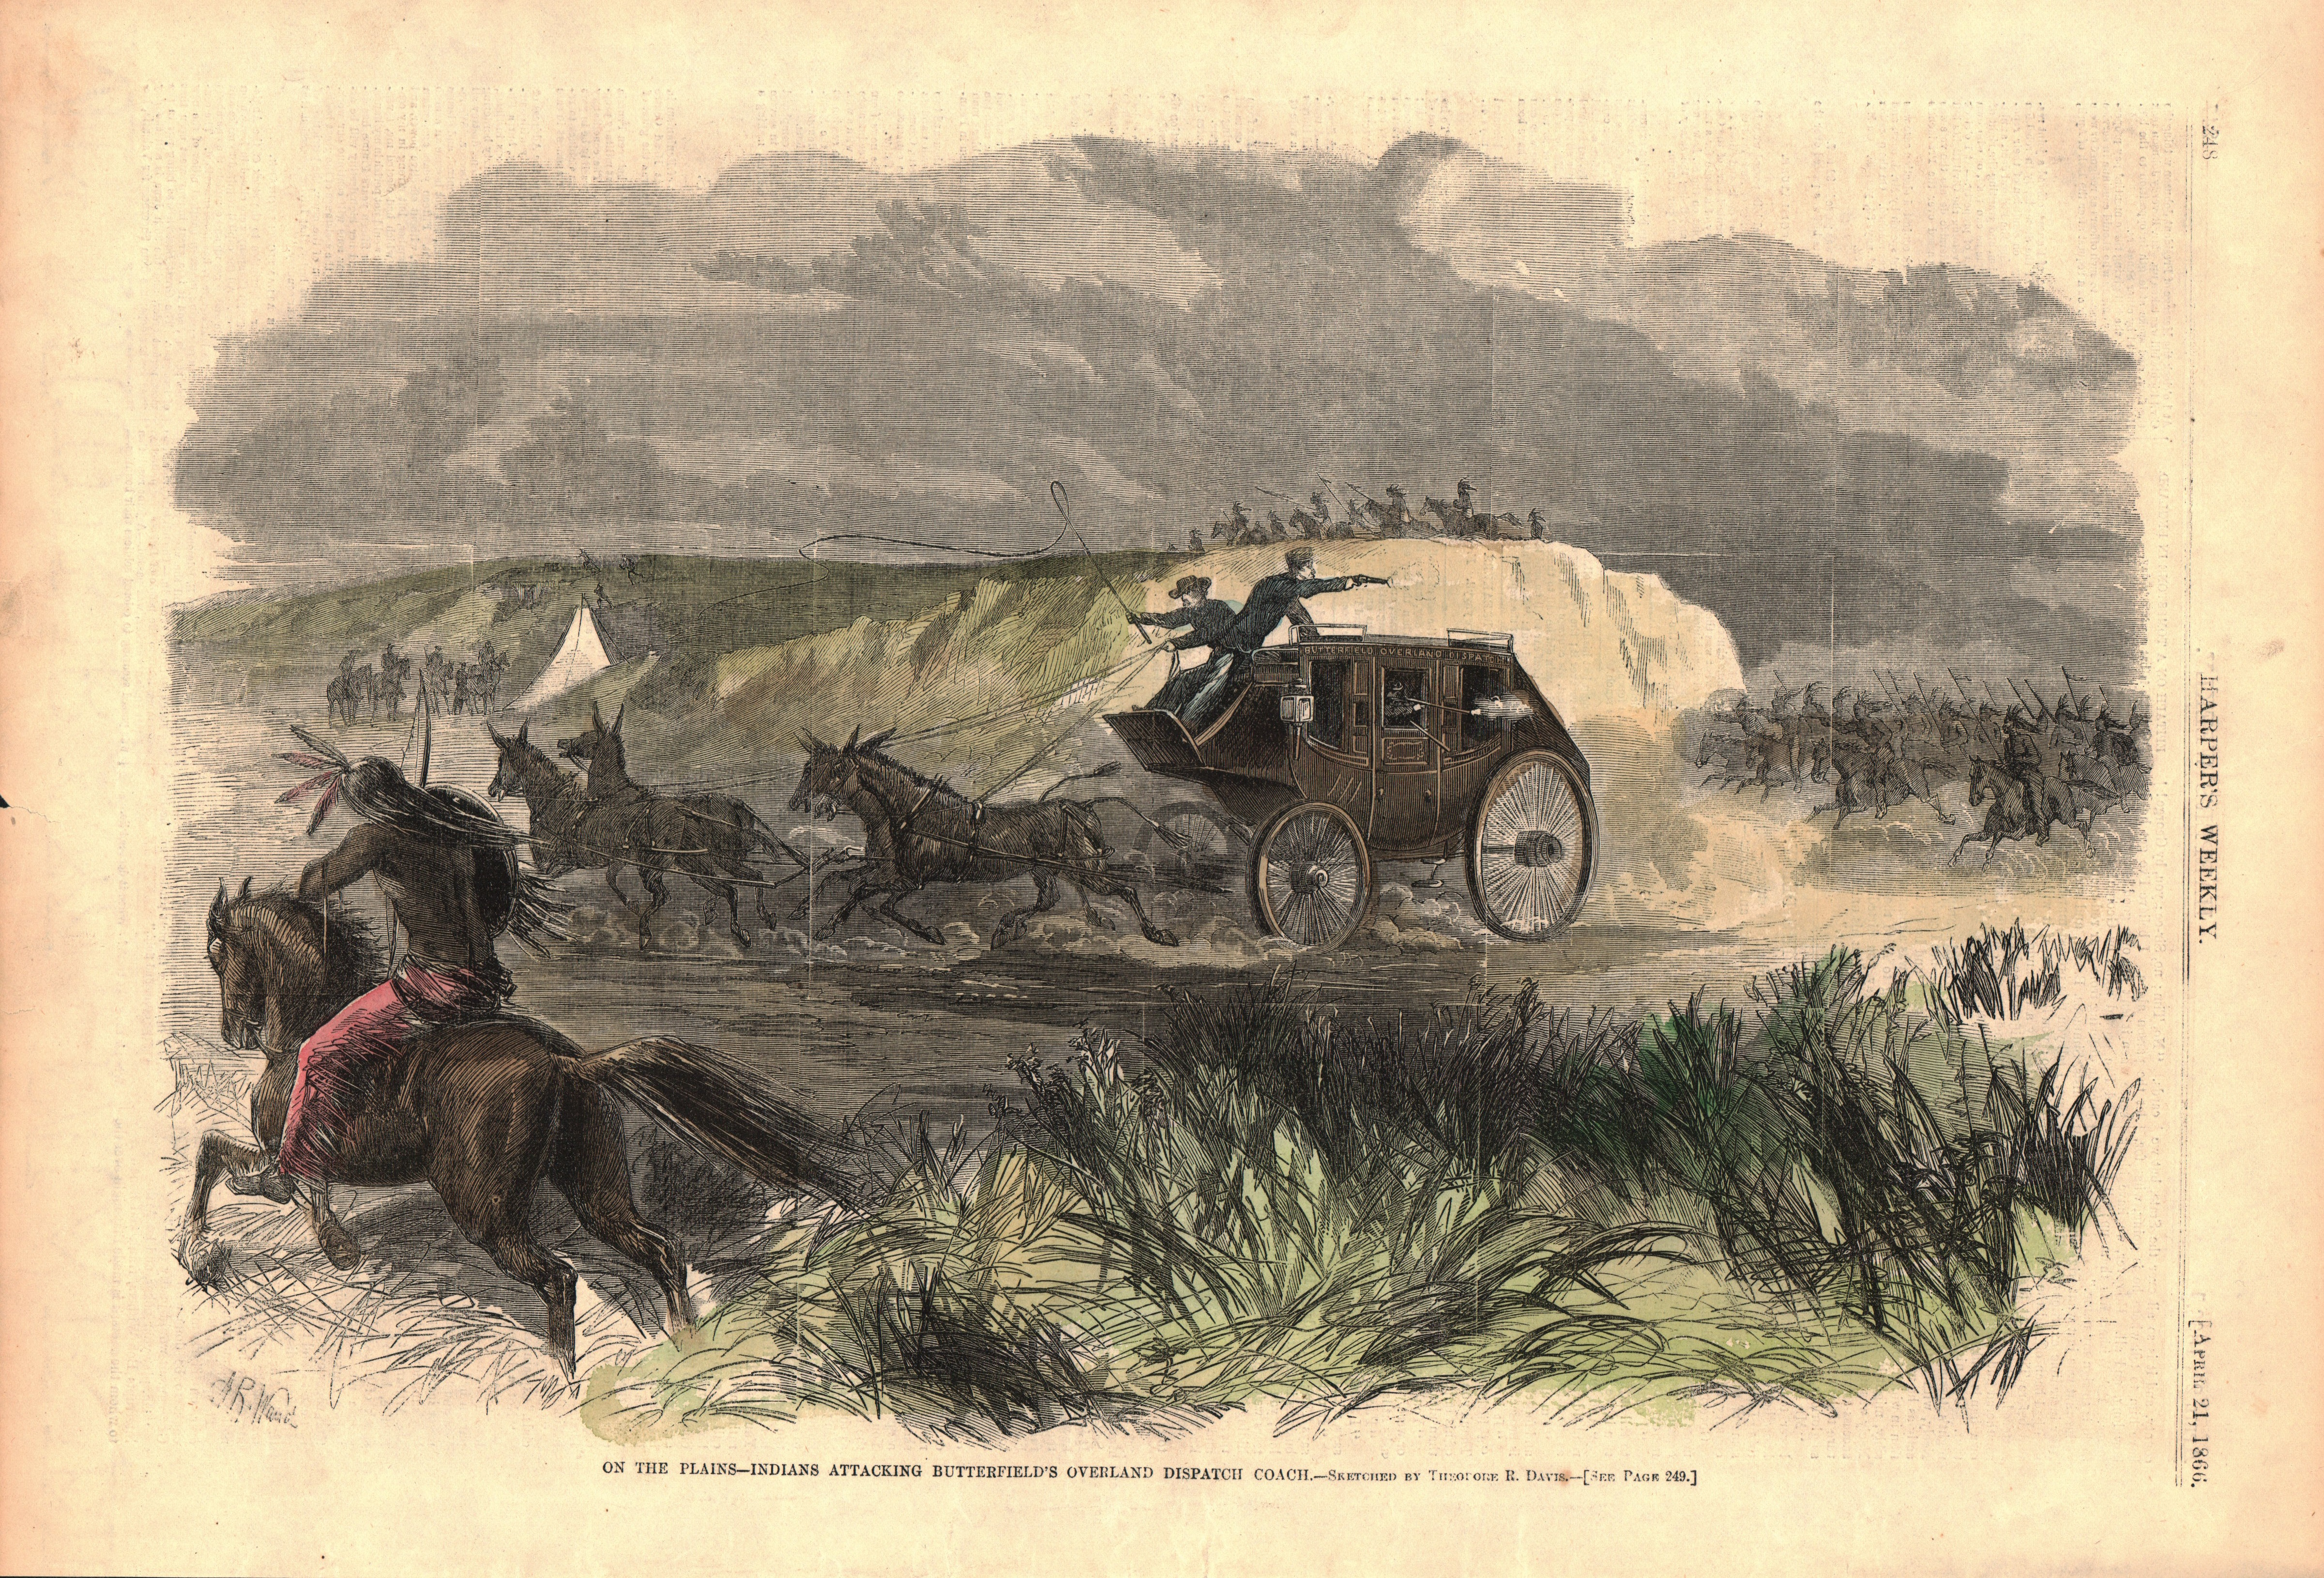 On the Plains-Indians Attacking Butterfields Overland Dispatch Coach